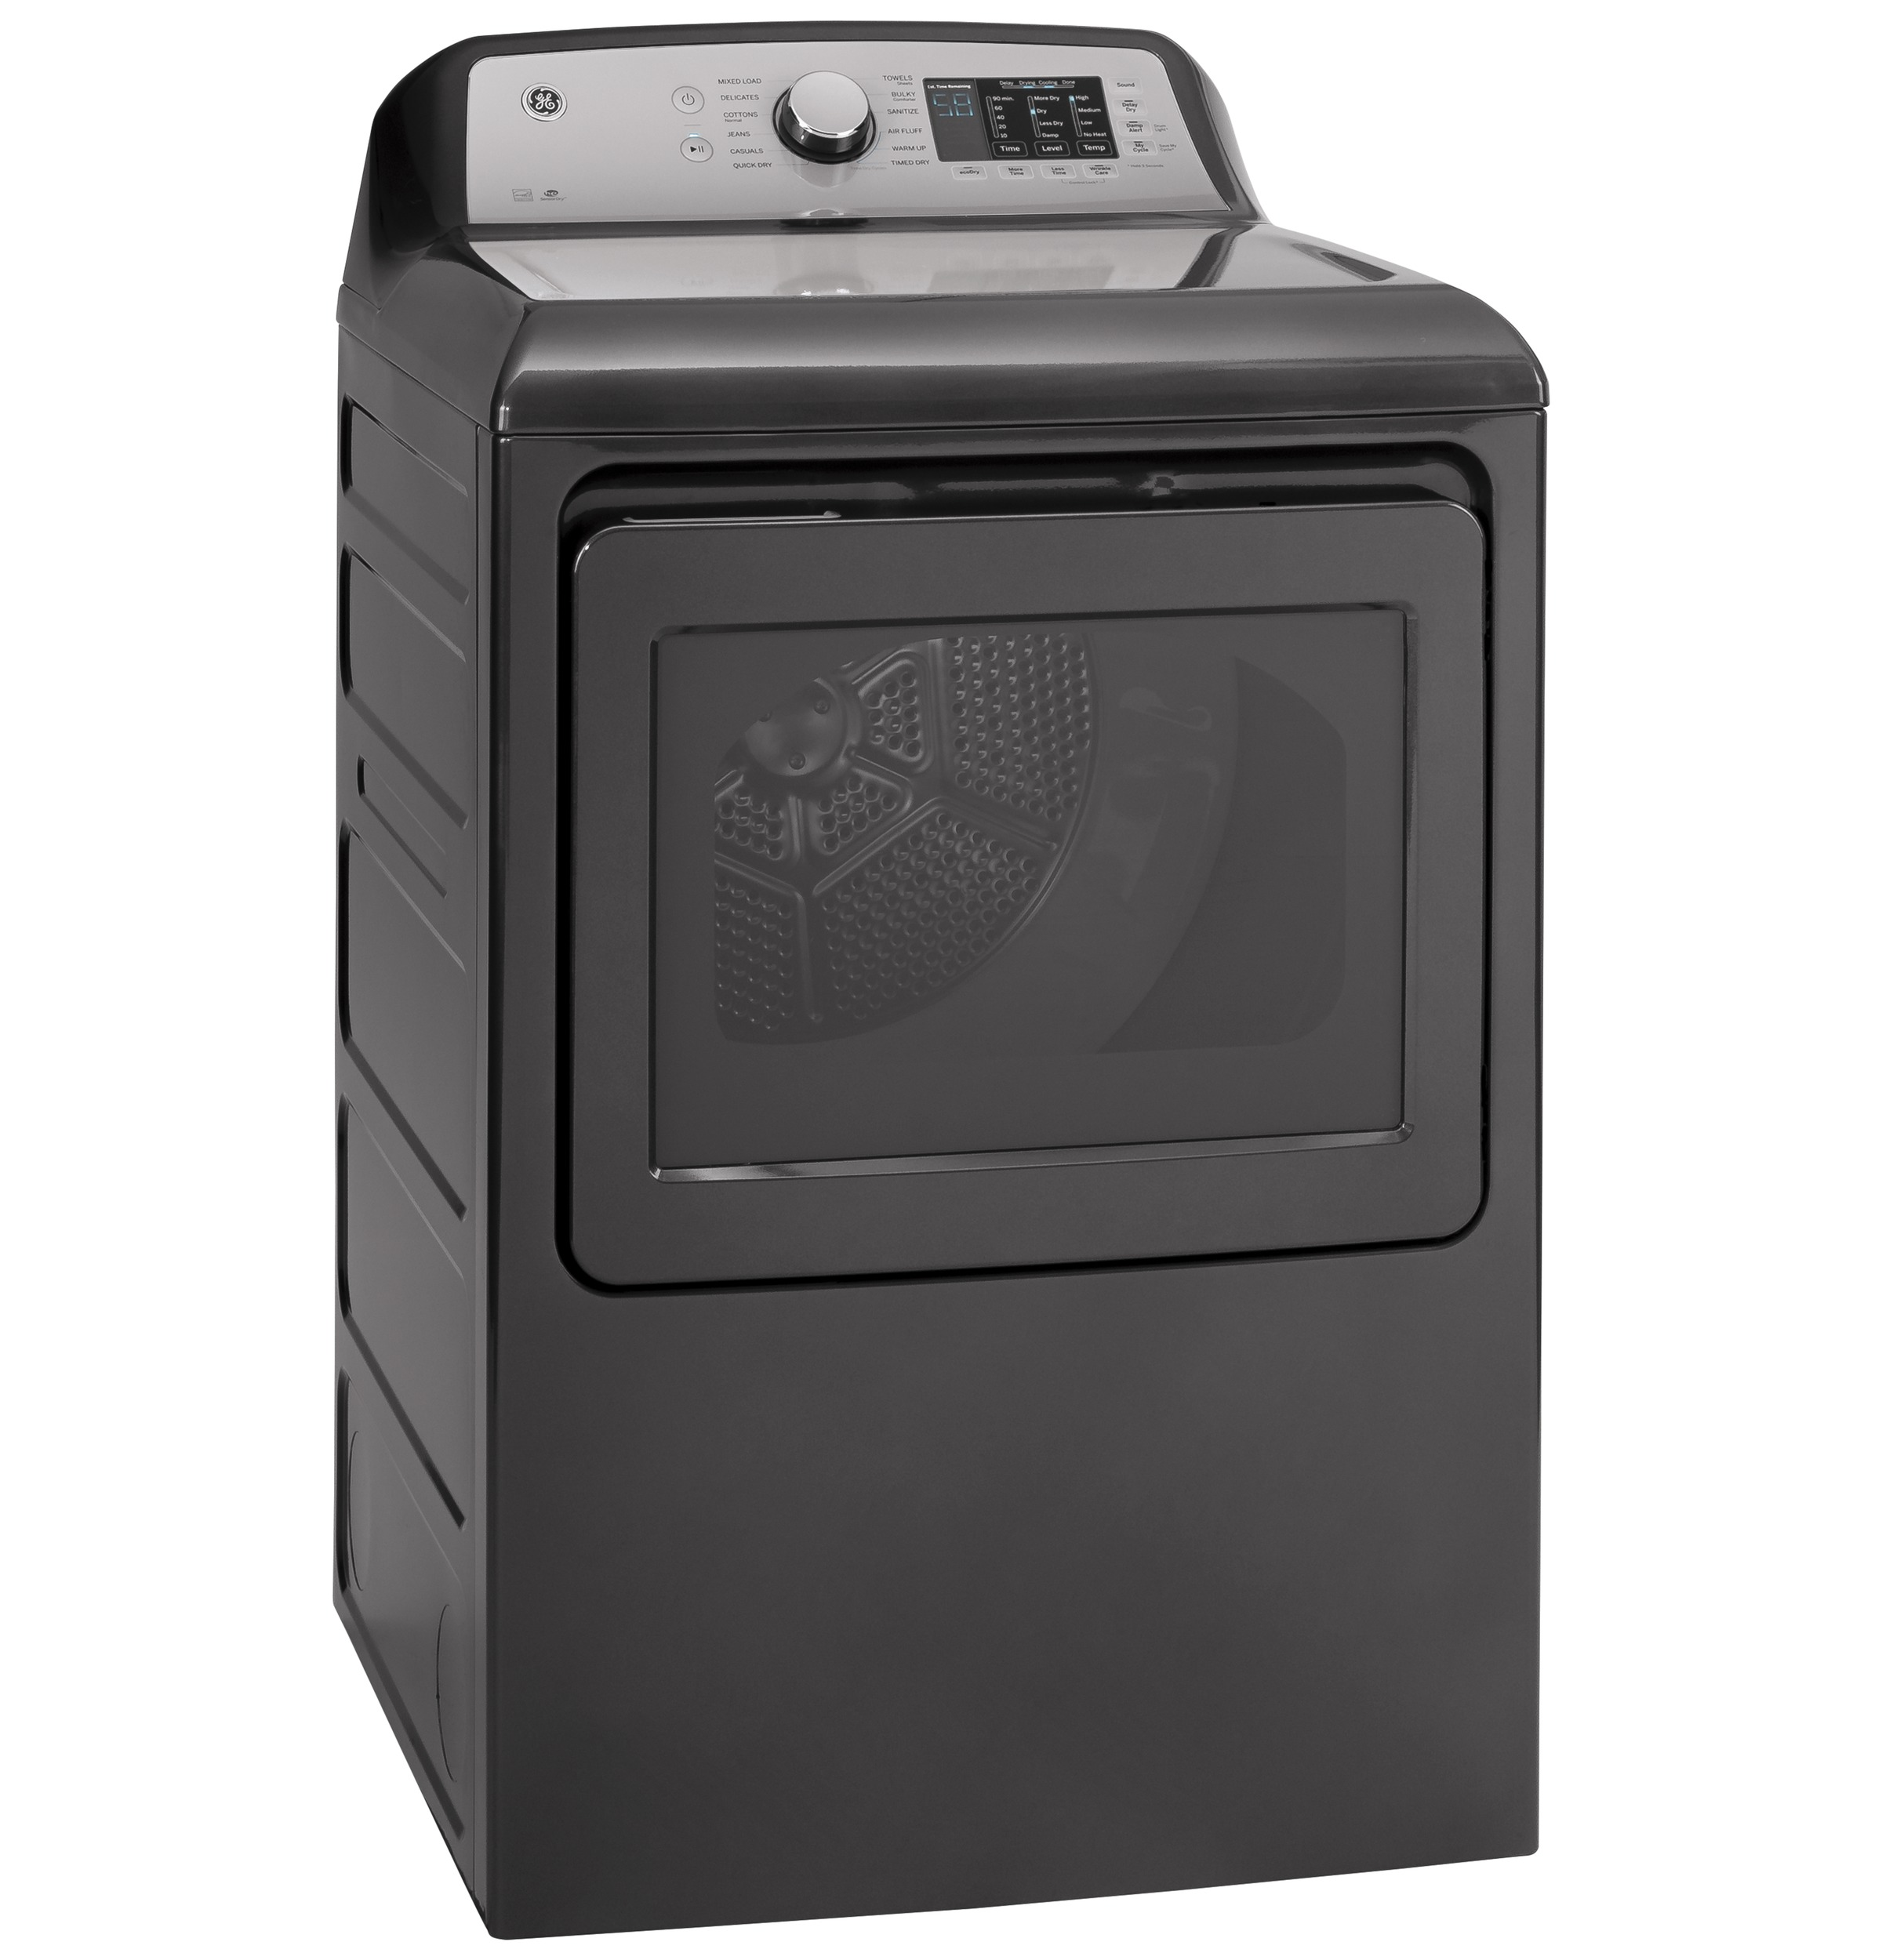 Model: GTD72EBPNDG | GE GE® 7.4 cu. ft. Capacity aluminized alloy drum Electric Dryer with HE Sensor Dry